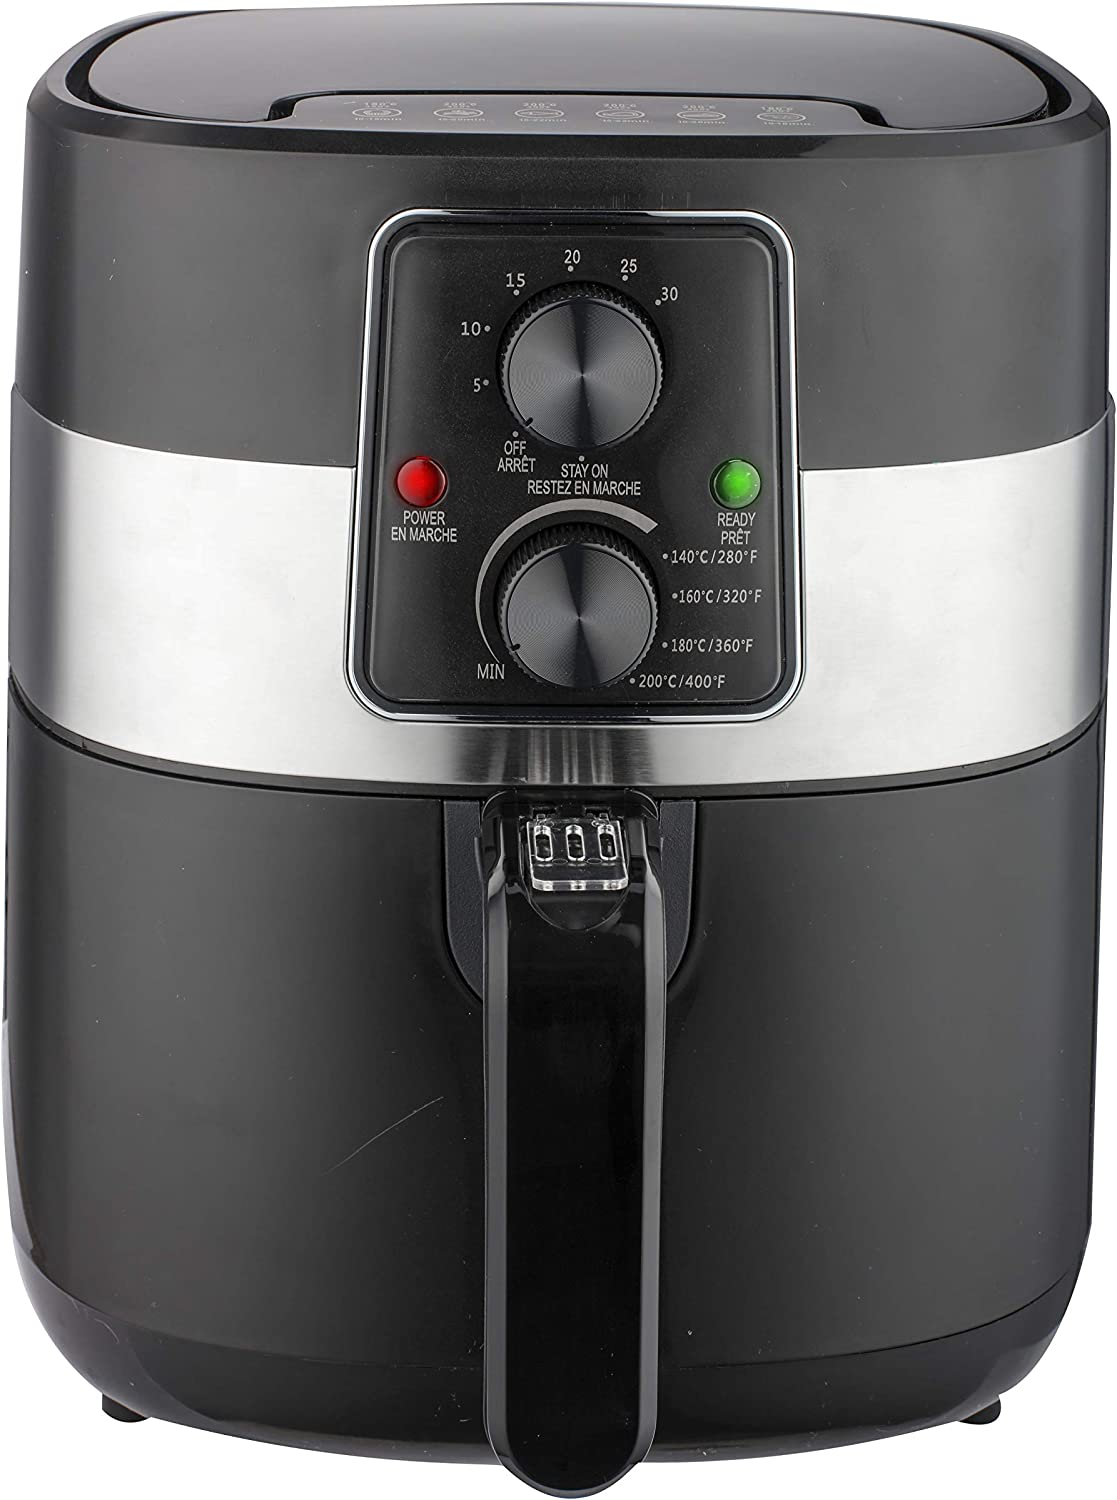 Frigidaire EAF300-BLACK 3.2-qt Digital Air Fryer, Black, 3.2qt